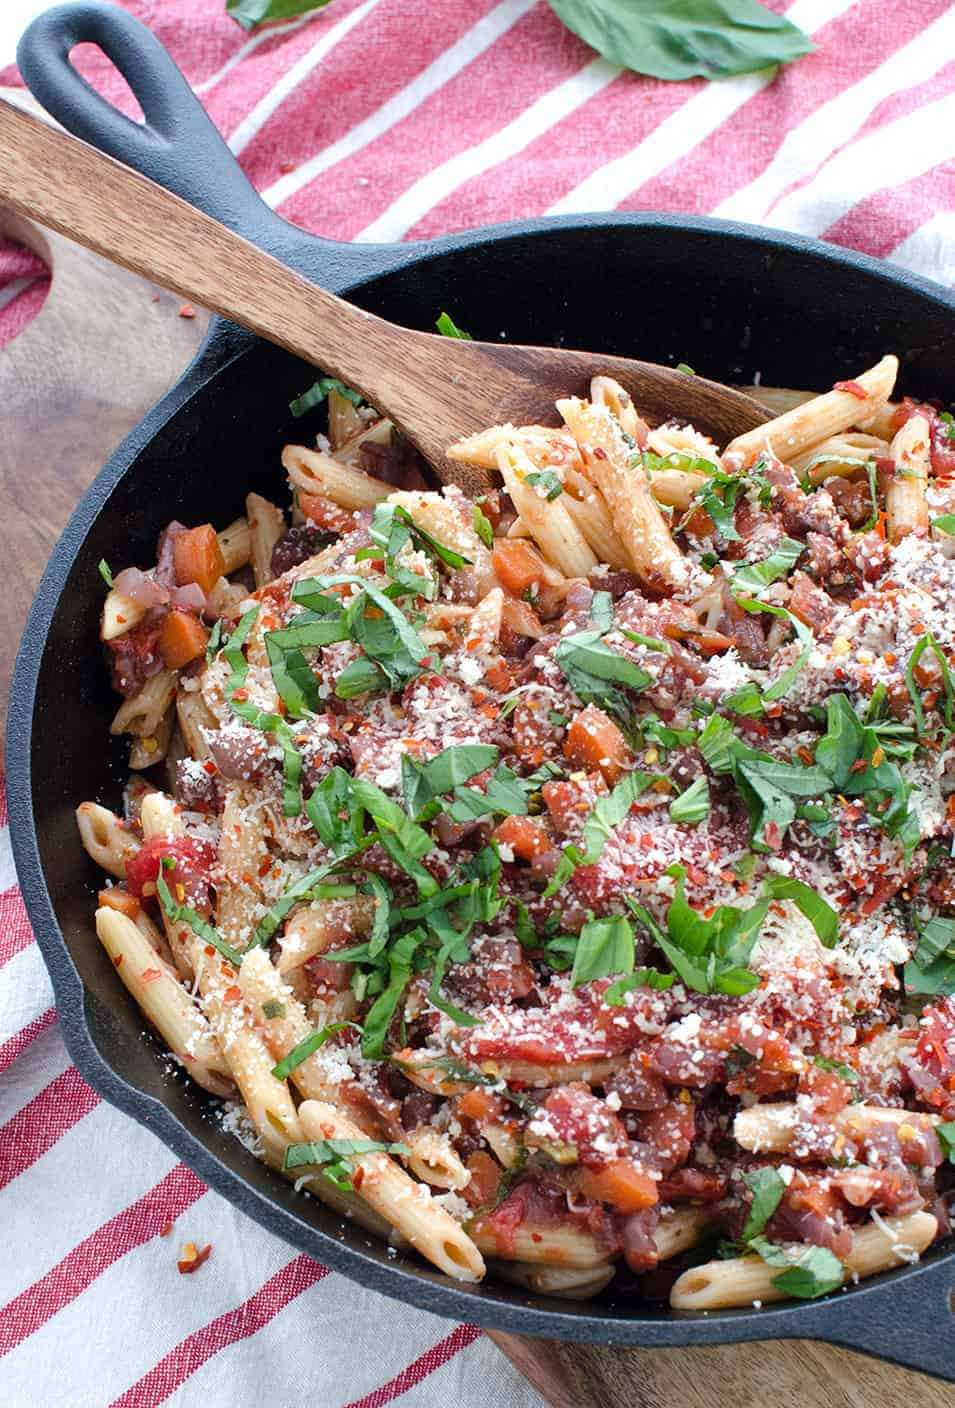 The BEST weeknight pasta! You've gotta try this vegetarian pasta. Spicy vegetable marinara over dreamfields pasta. | www.delishknowledge.com